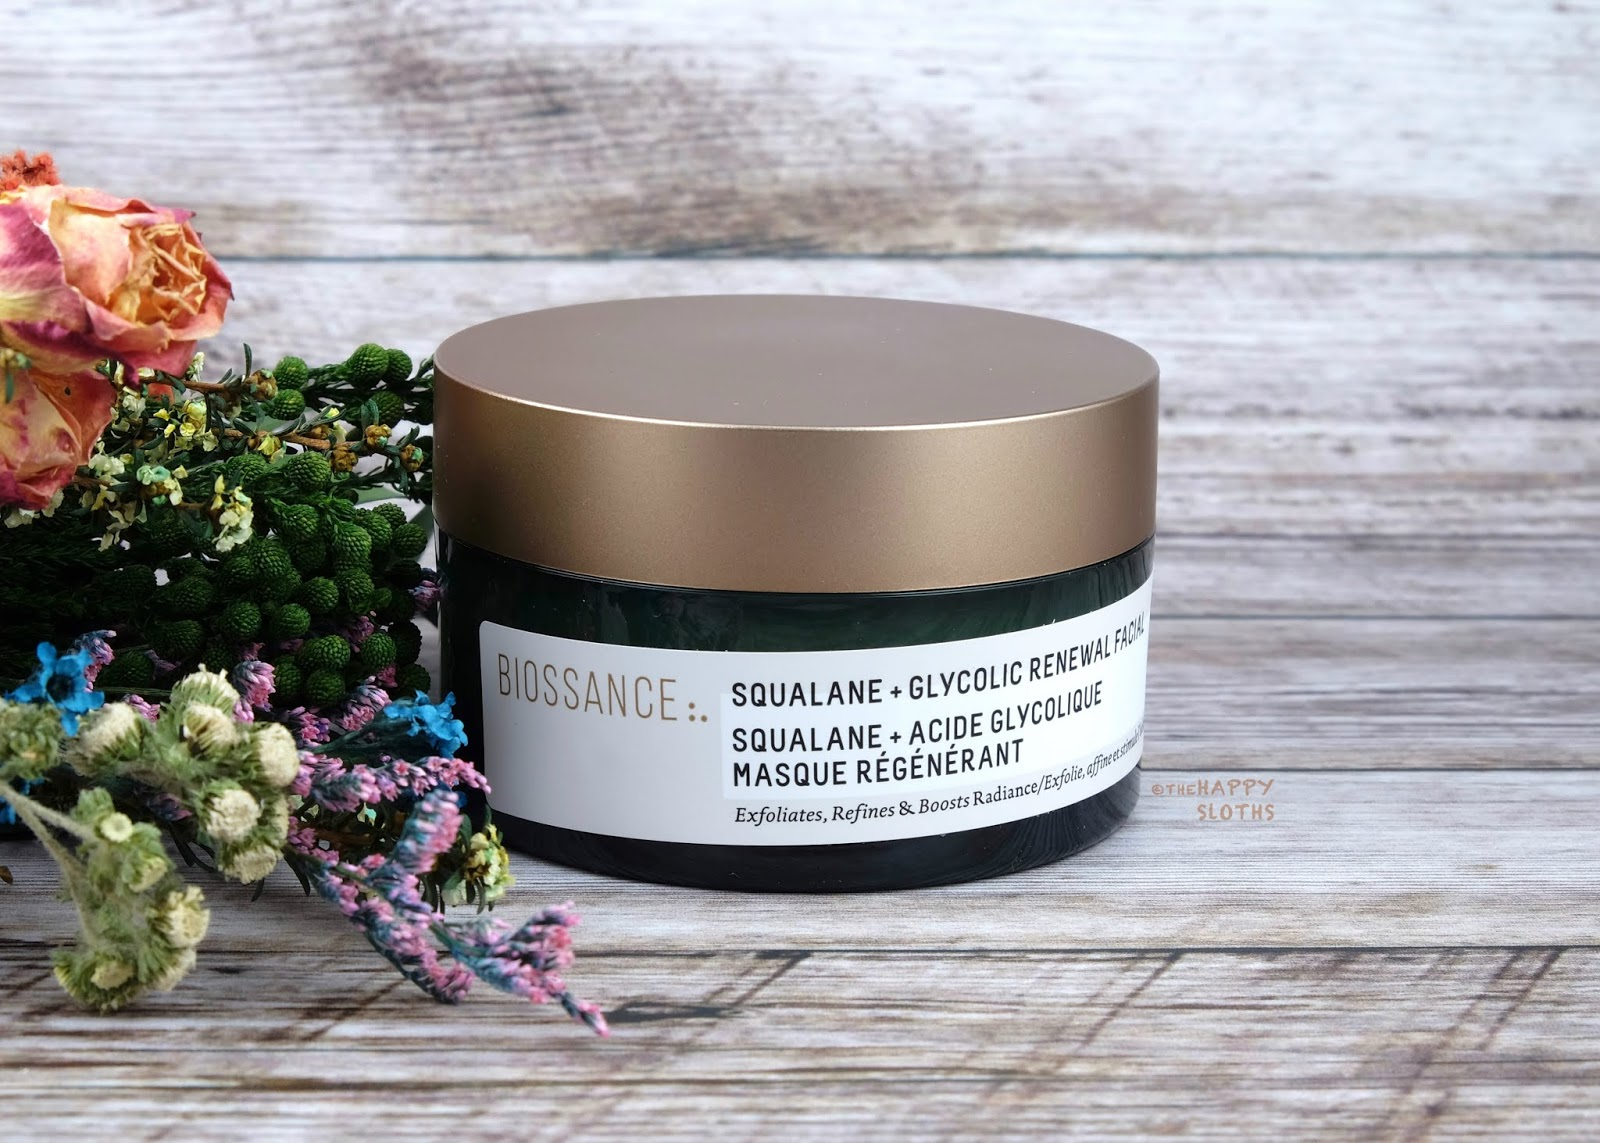 Biossance | Squalane + Glycolic Renewal Facial: Review